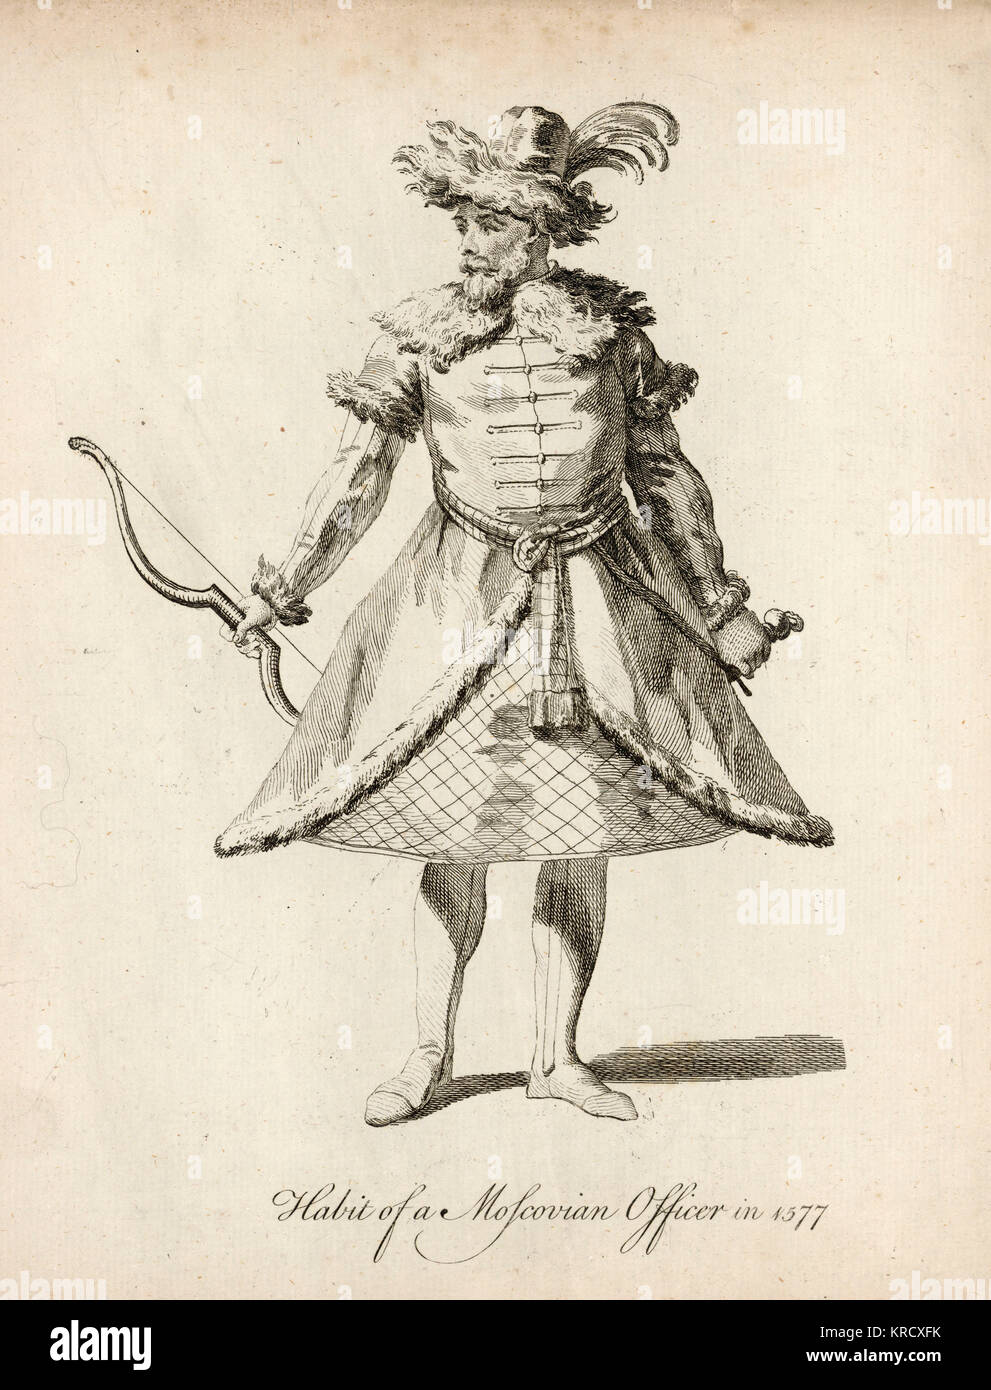 RUSSIA  A Moscovian officer.       Date: 1577 - Stock Image